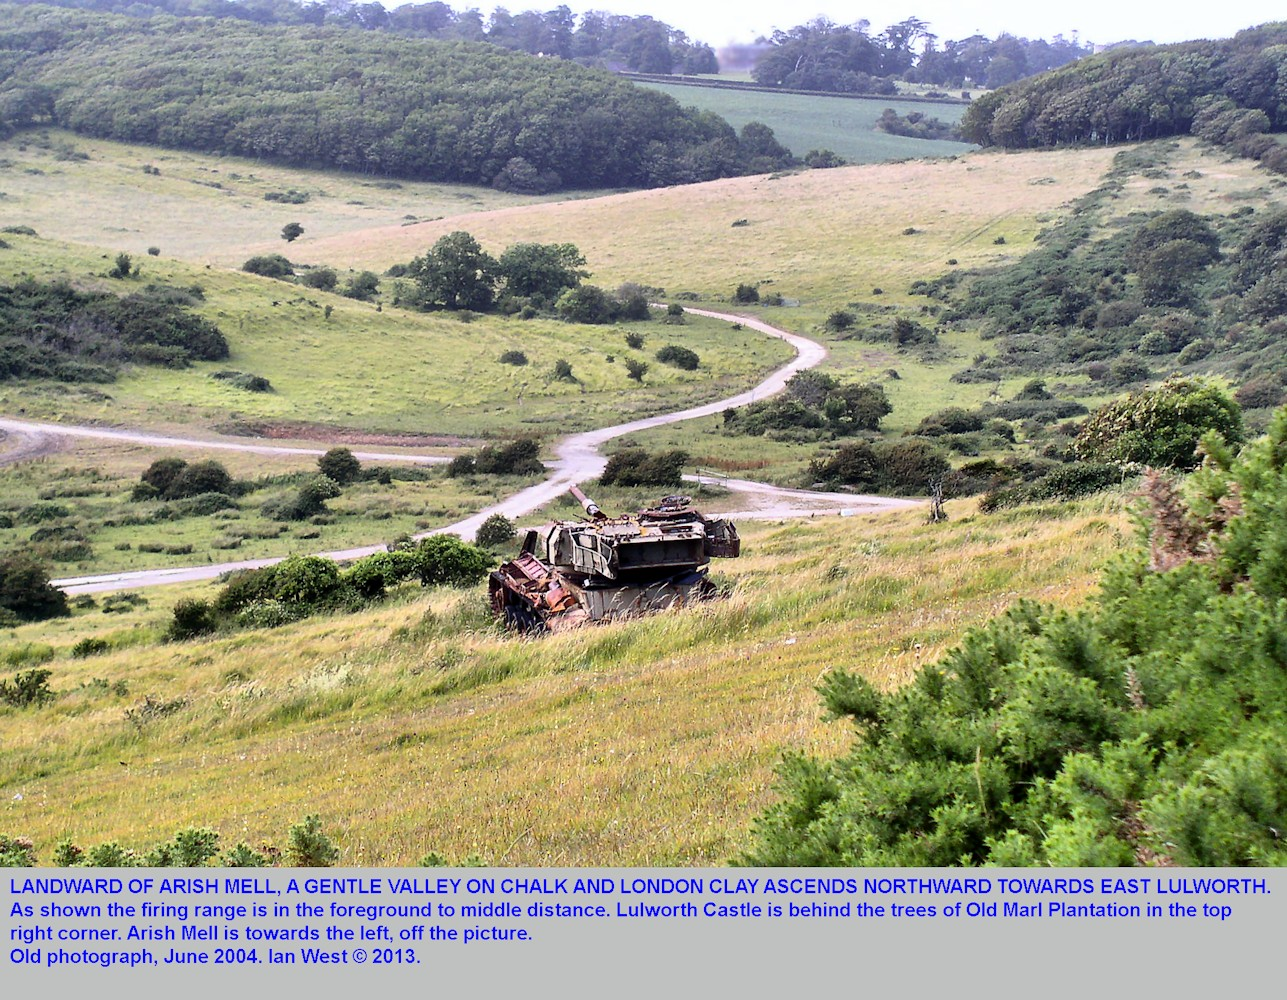 A view of the valley on Chalk and London Clay, landward of Arish Mell, near Mupe Bay, Dorset, 2004